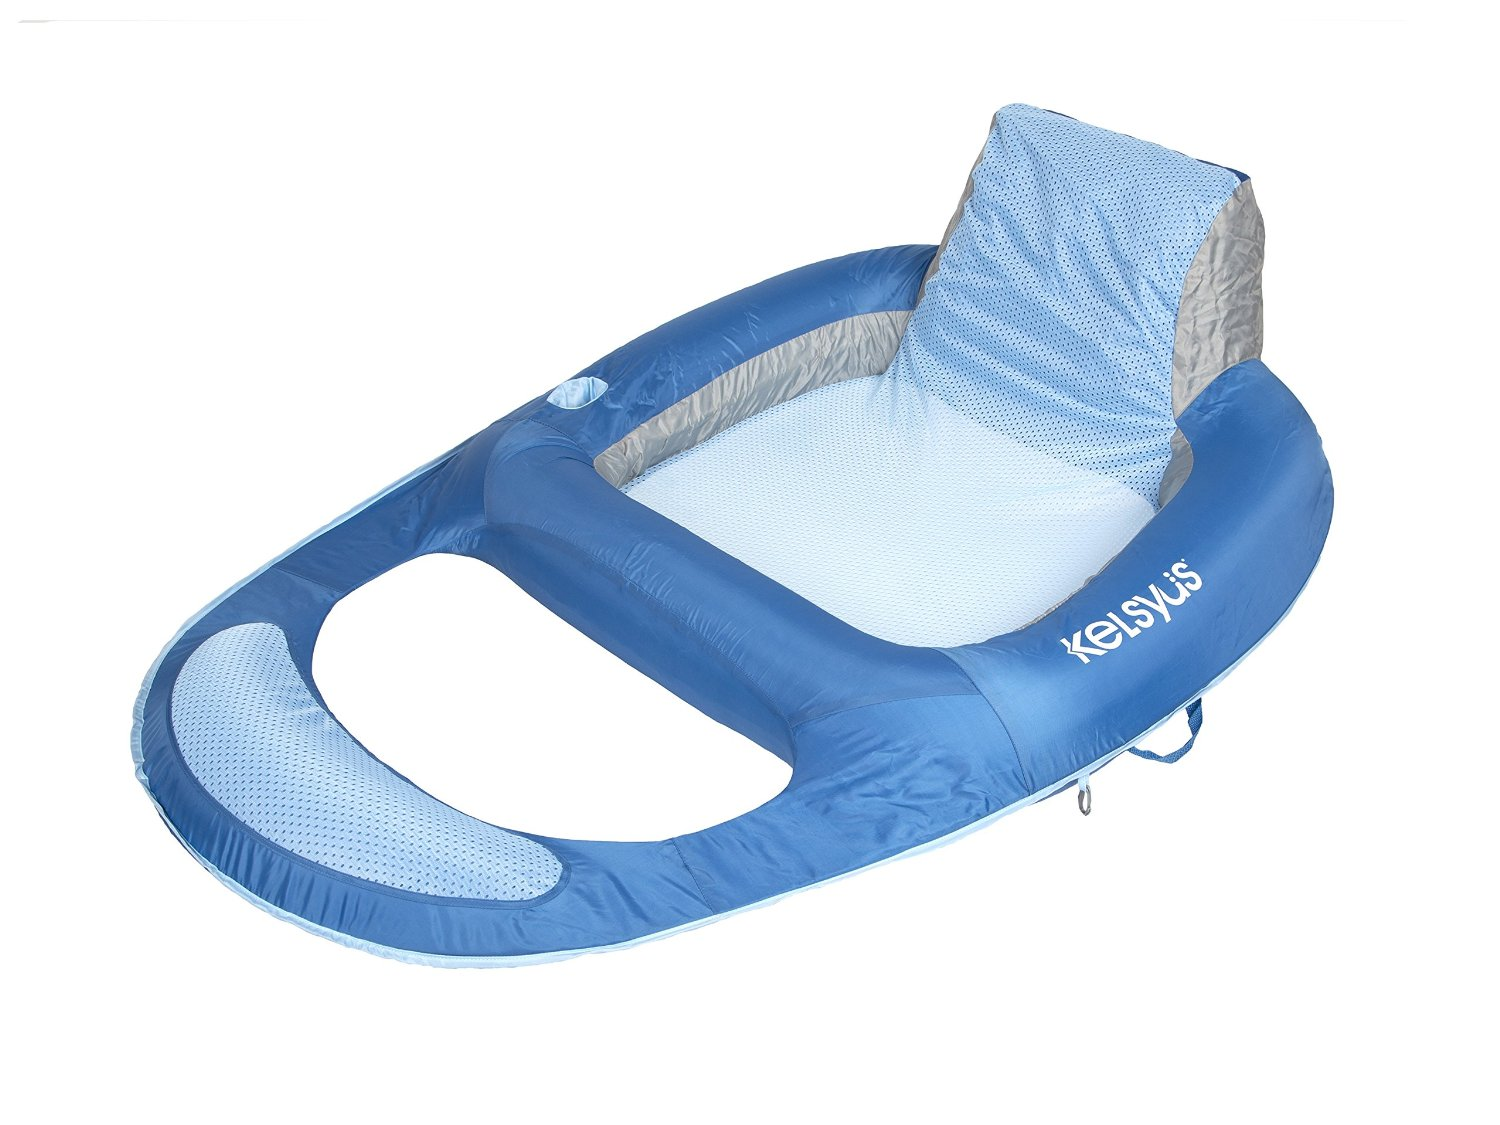 Top 10 Best Pool Loungers